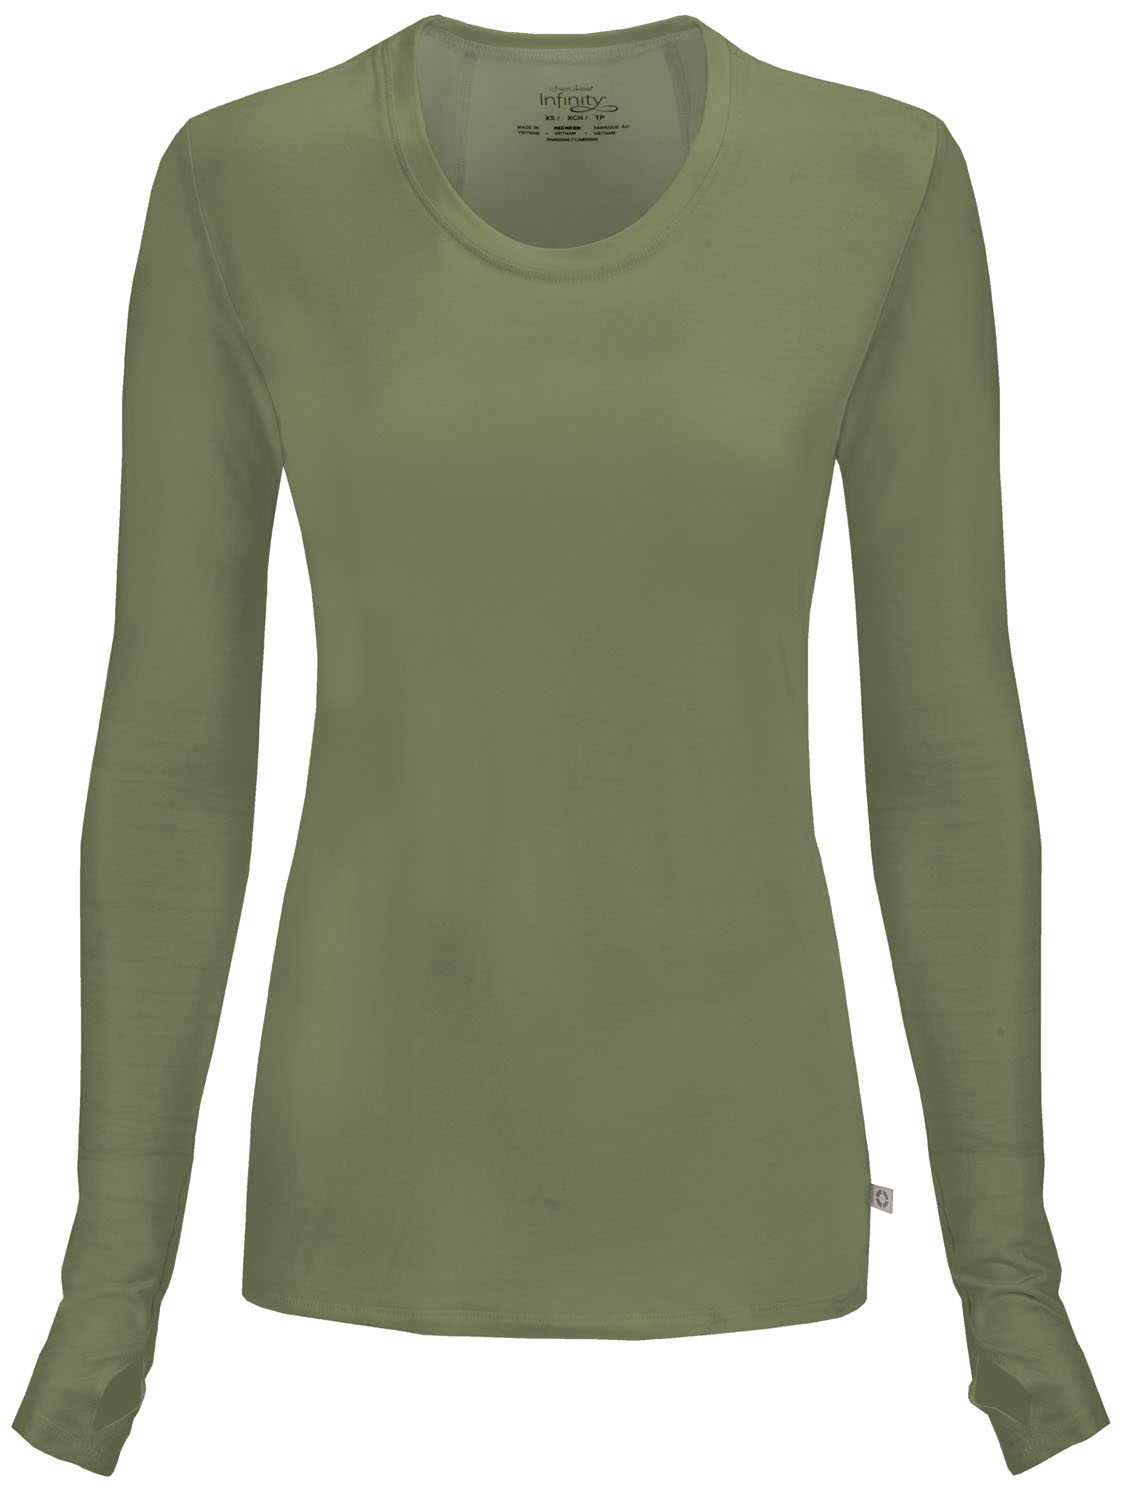 acdd006735c Infinity Long Sleeve Underscrub Knit Tee in Olive 2626A-OLPS from ...